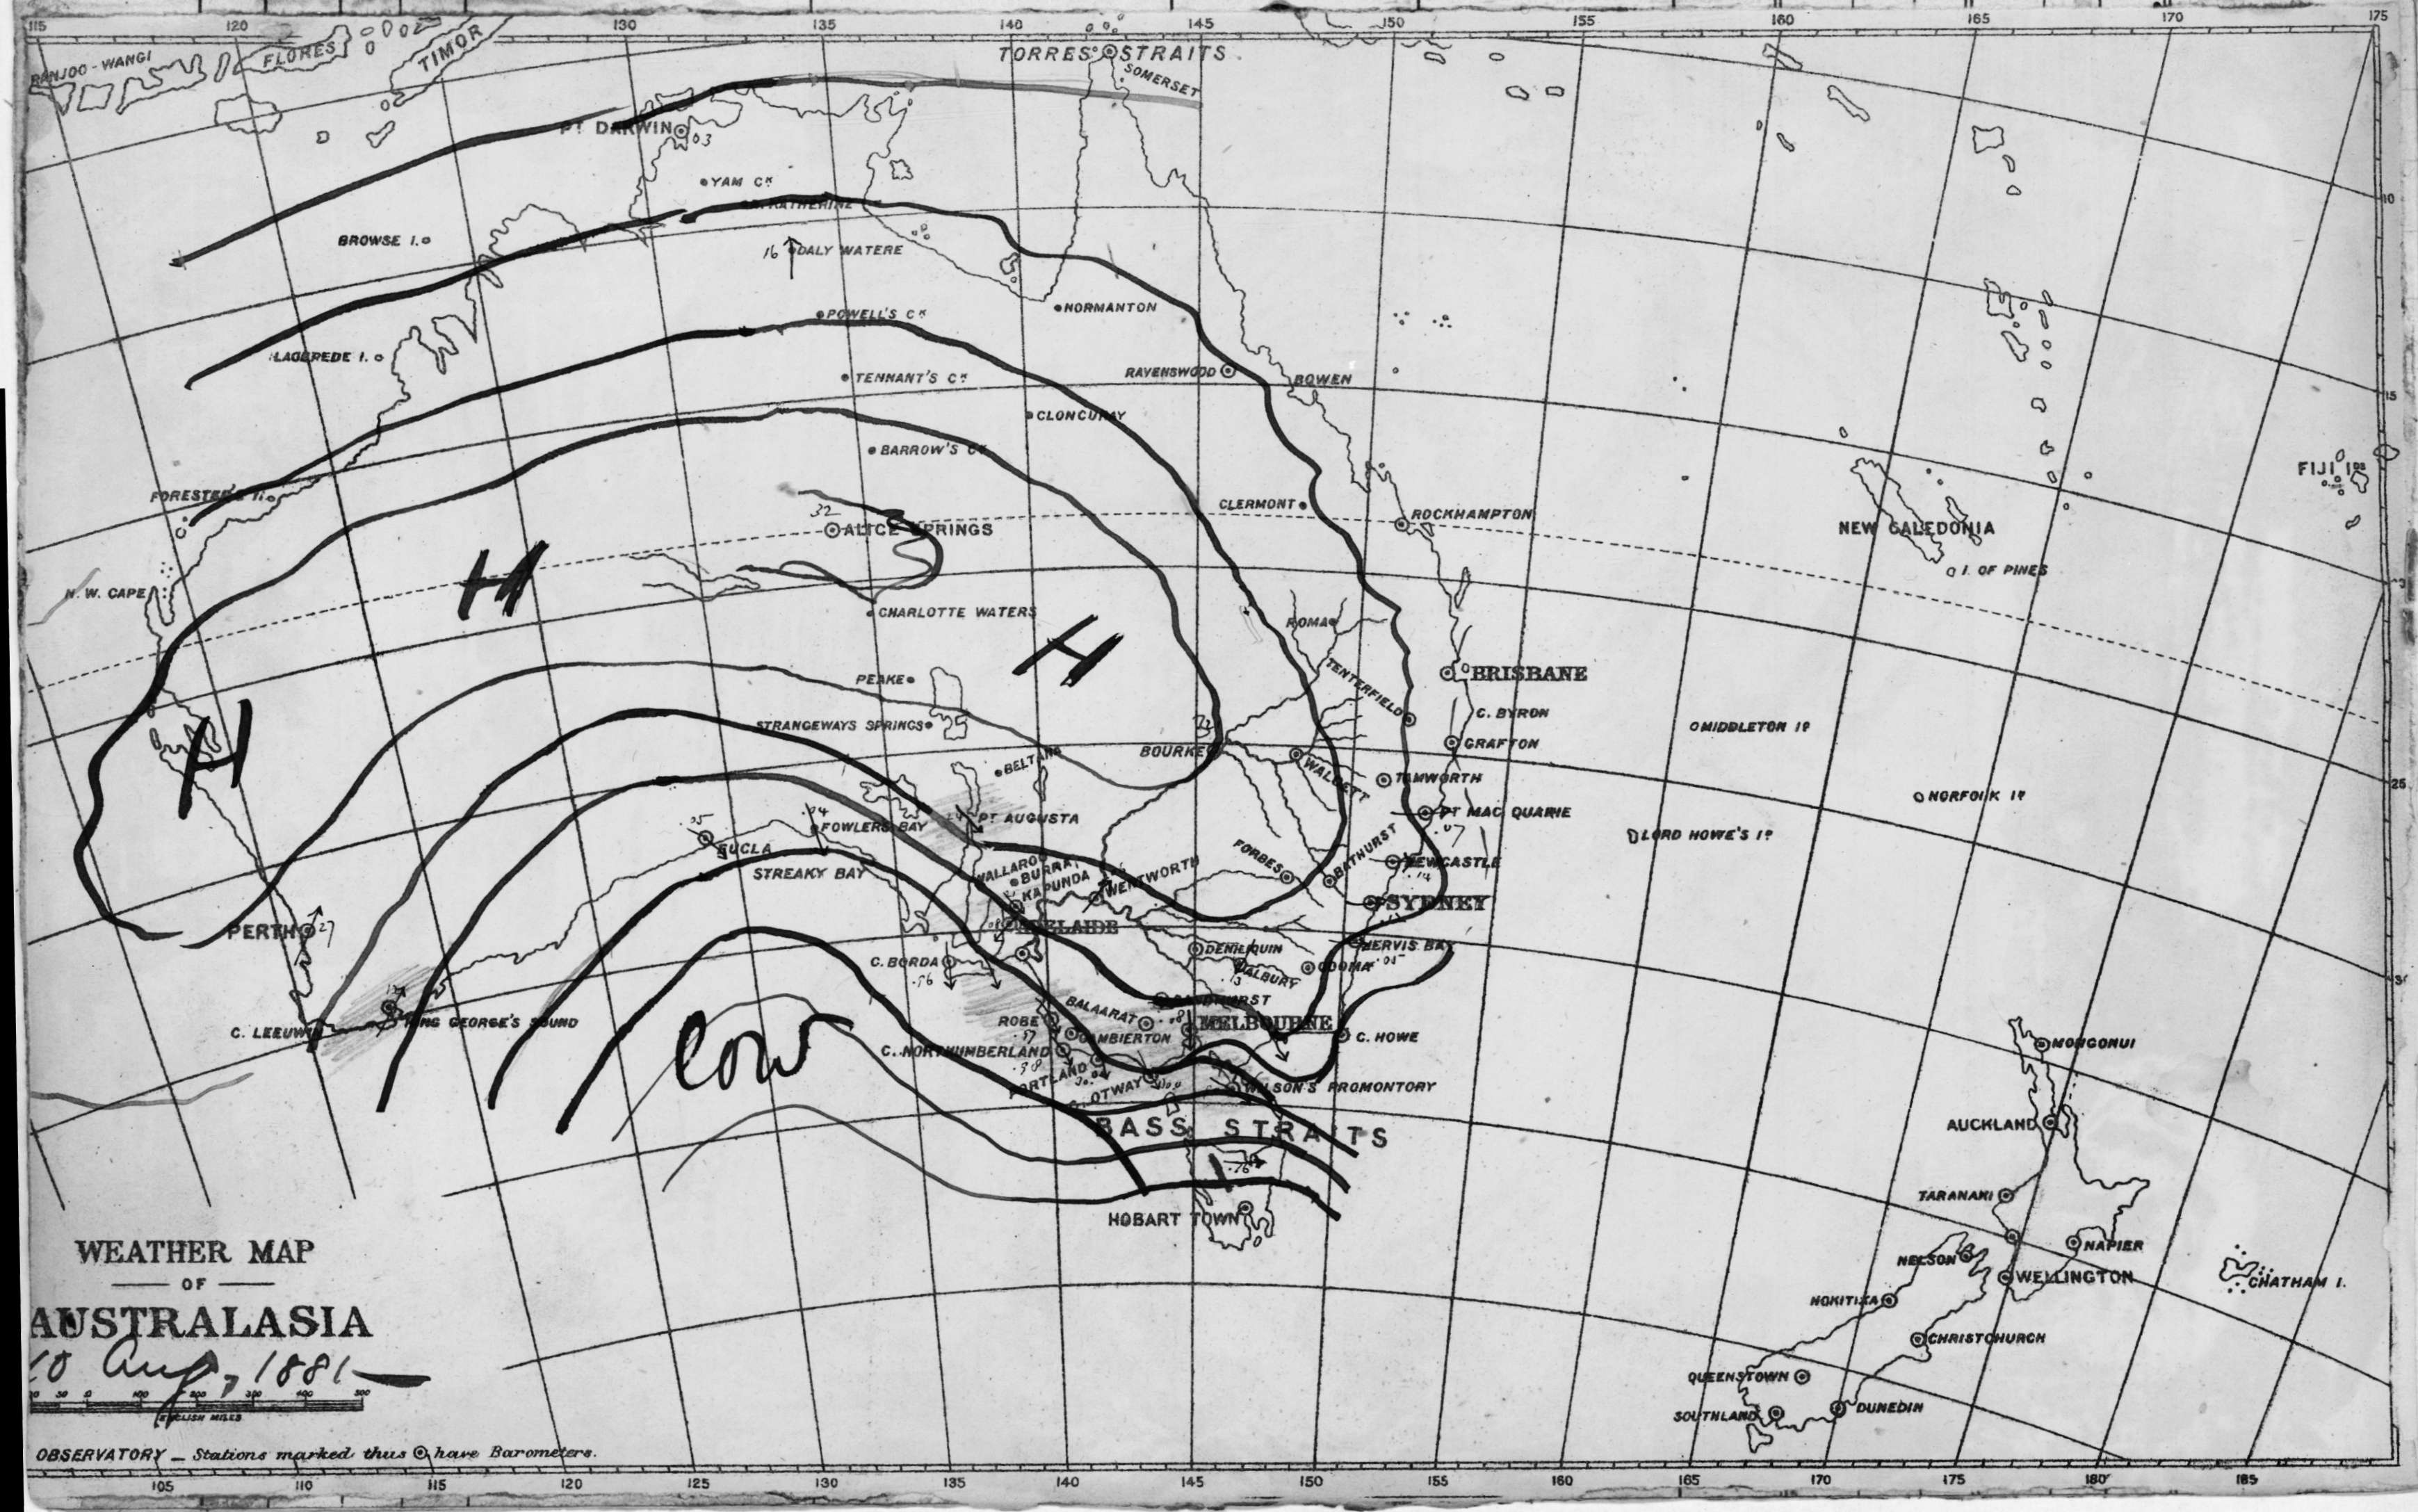 18810810c0900 Weather map